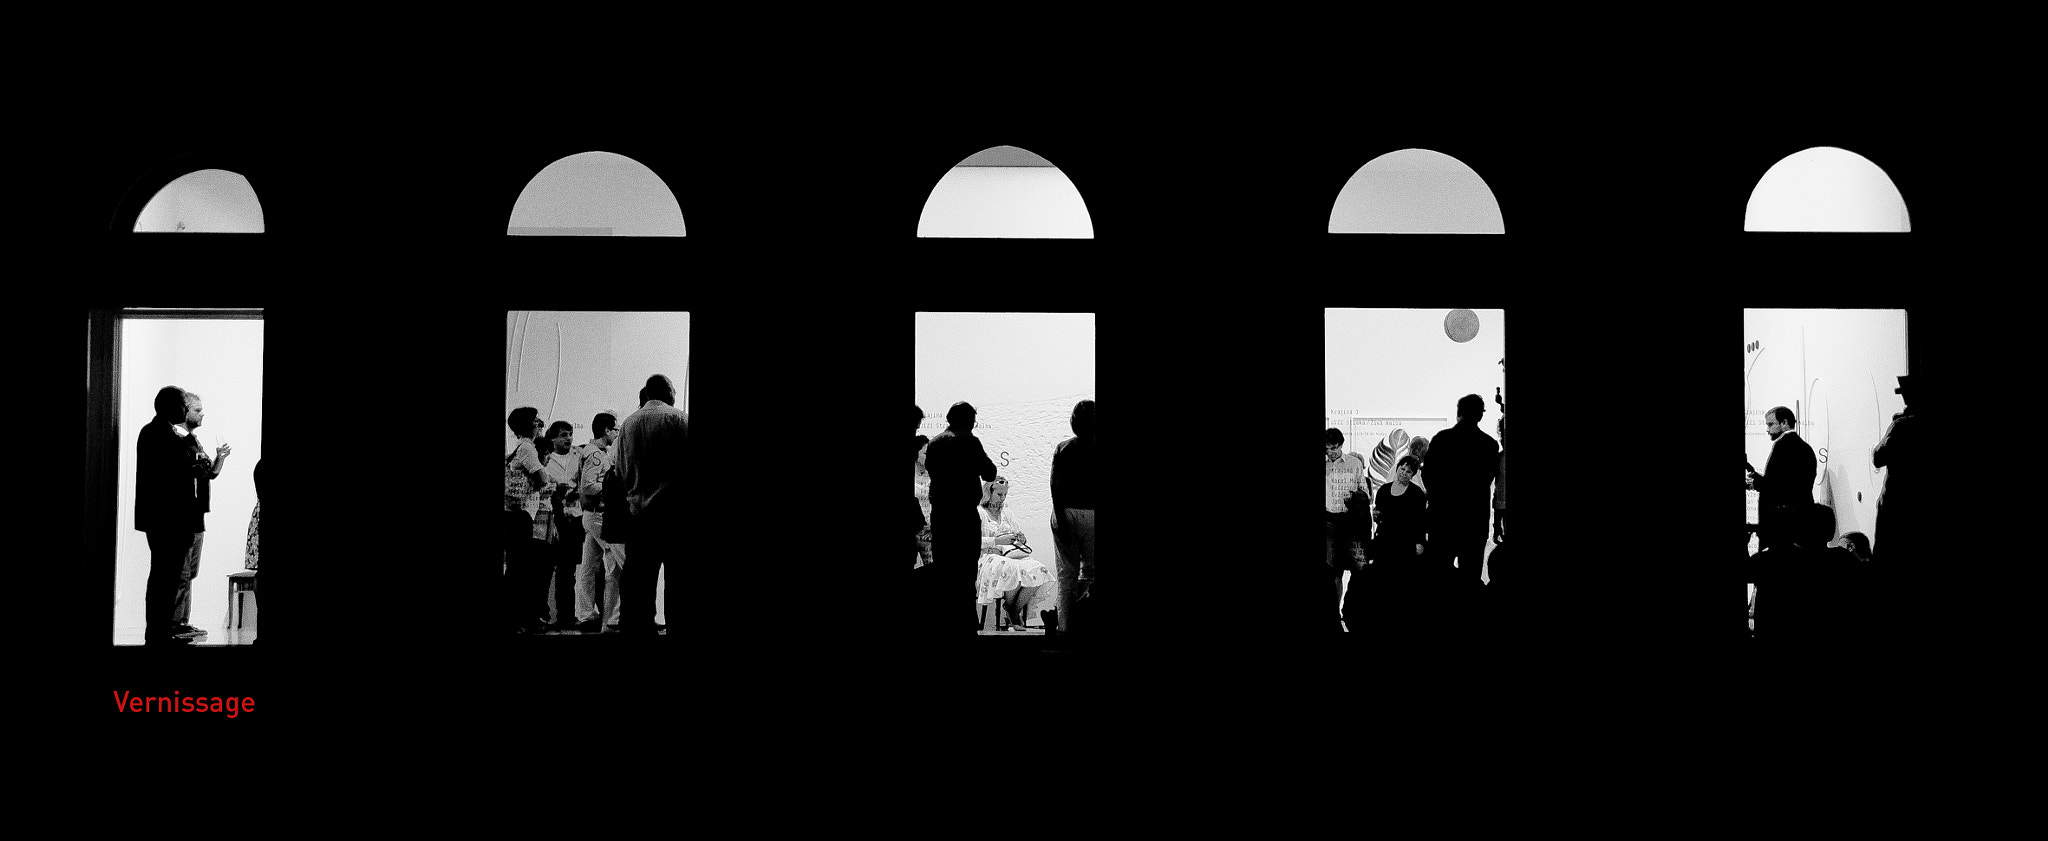 Photograph vernissage by Stefano Ermacora on 500px